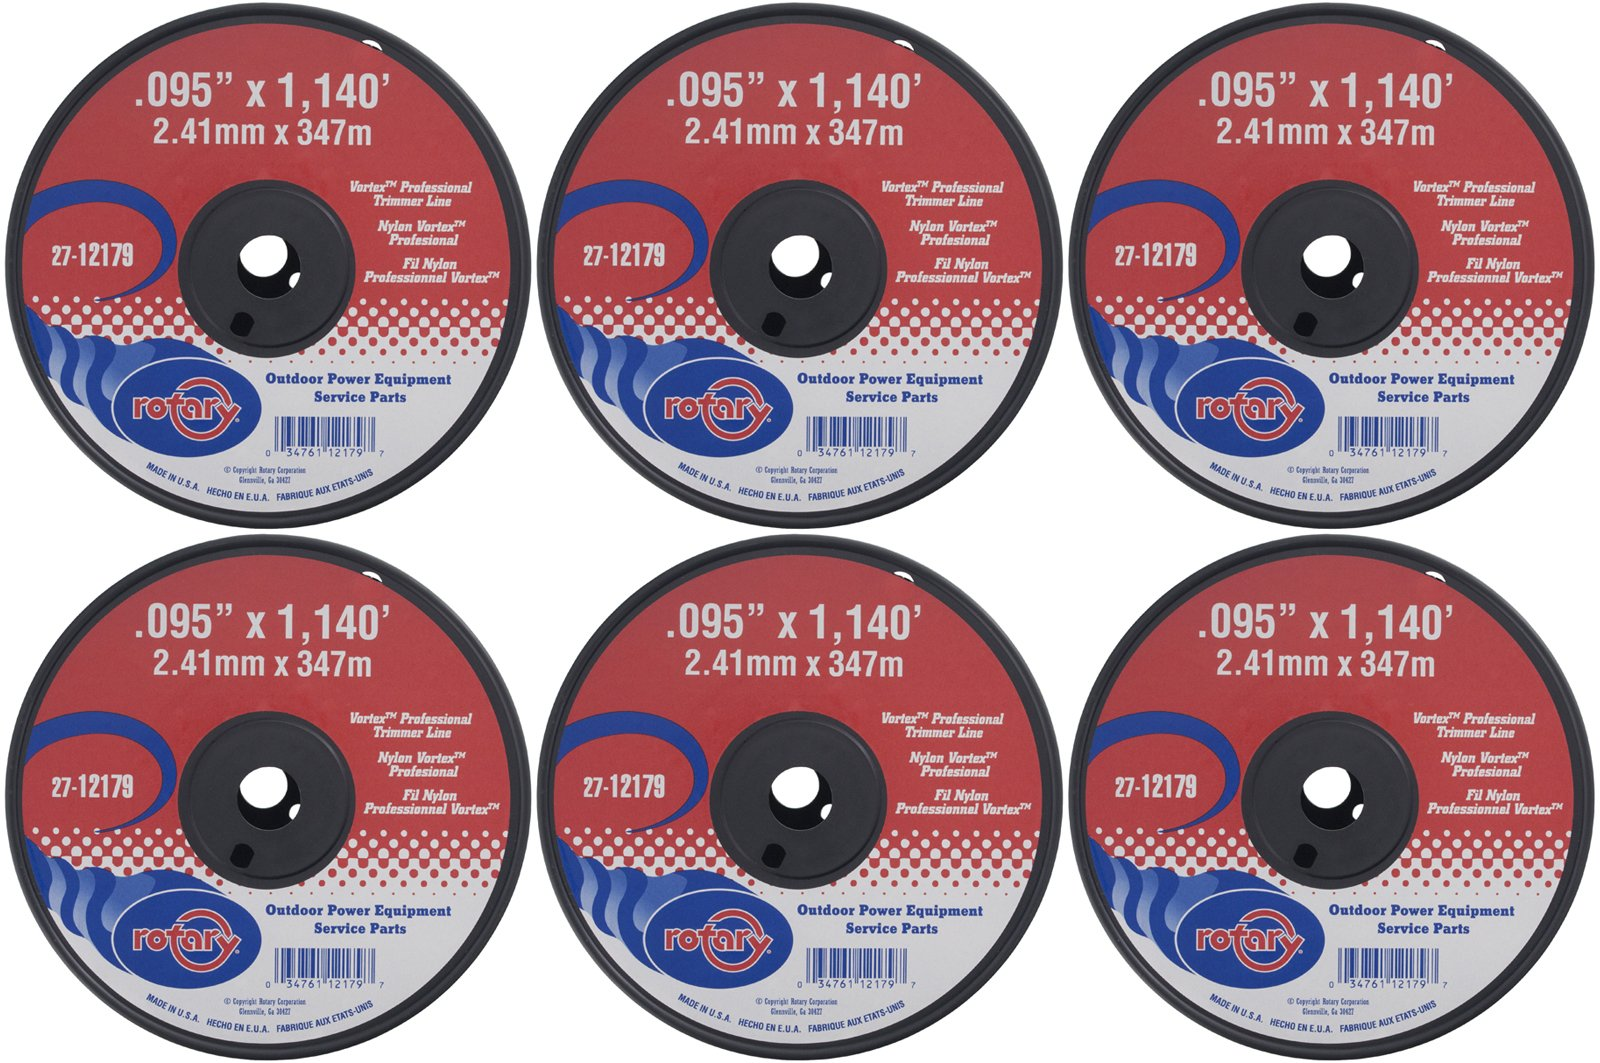 Rotary Six (6) Pack of Vortex Trimmer Line 12179 .095 x 1140 5 LBS Spools